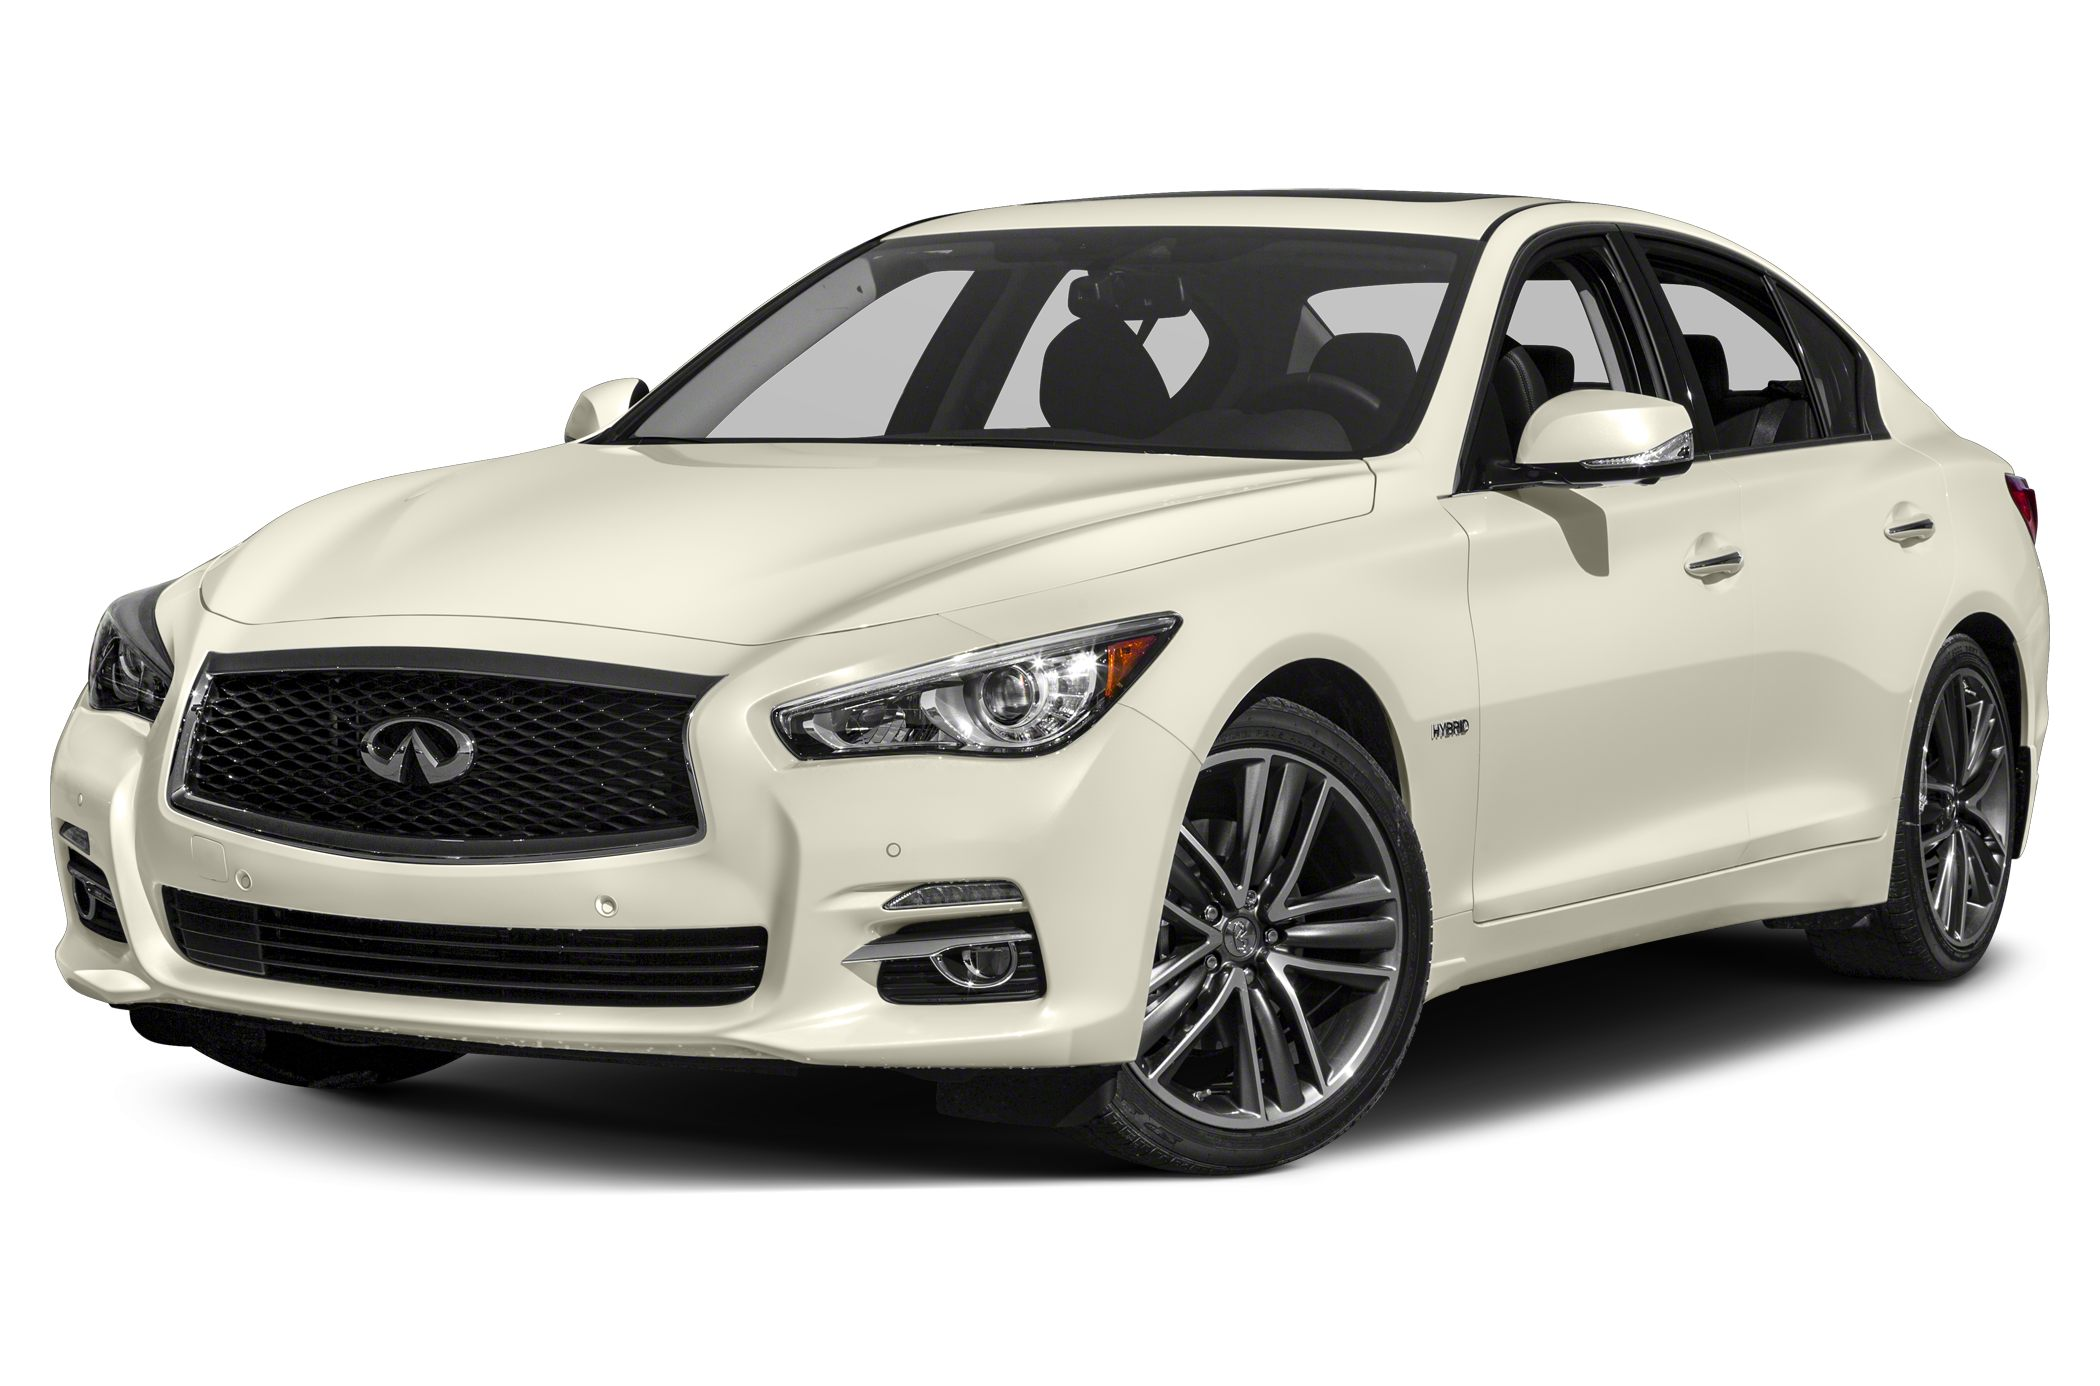 2014 infiniti q50 hybrid detroit 2013 photo gallery. Black Bedroom Furniture Sets. Home Design Ideas